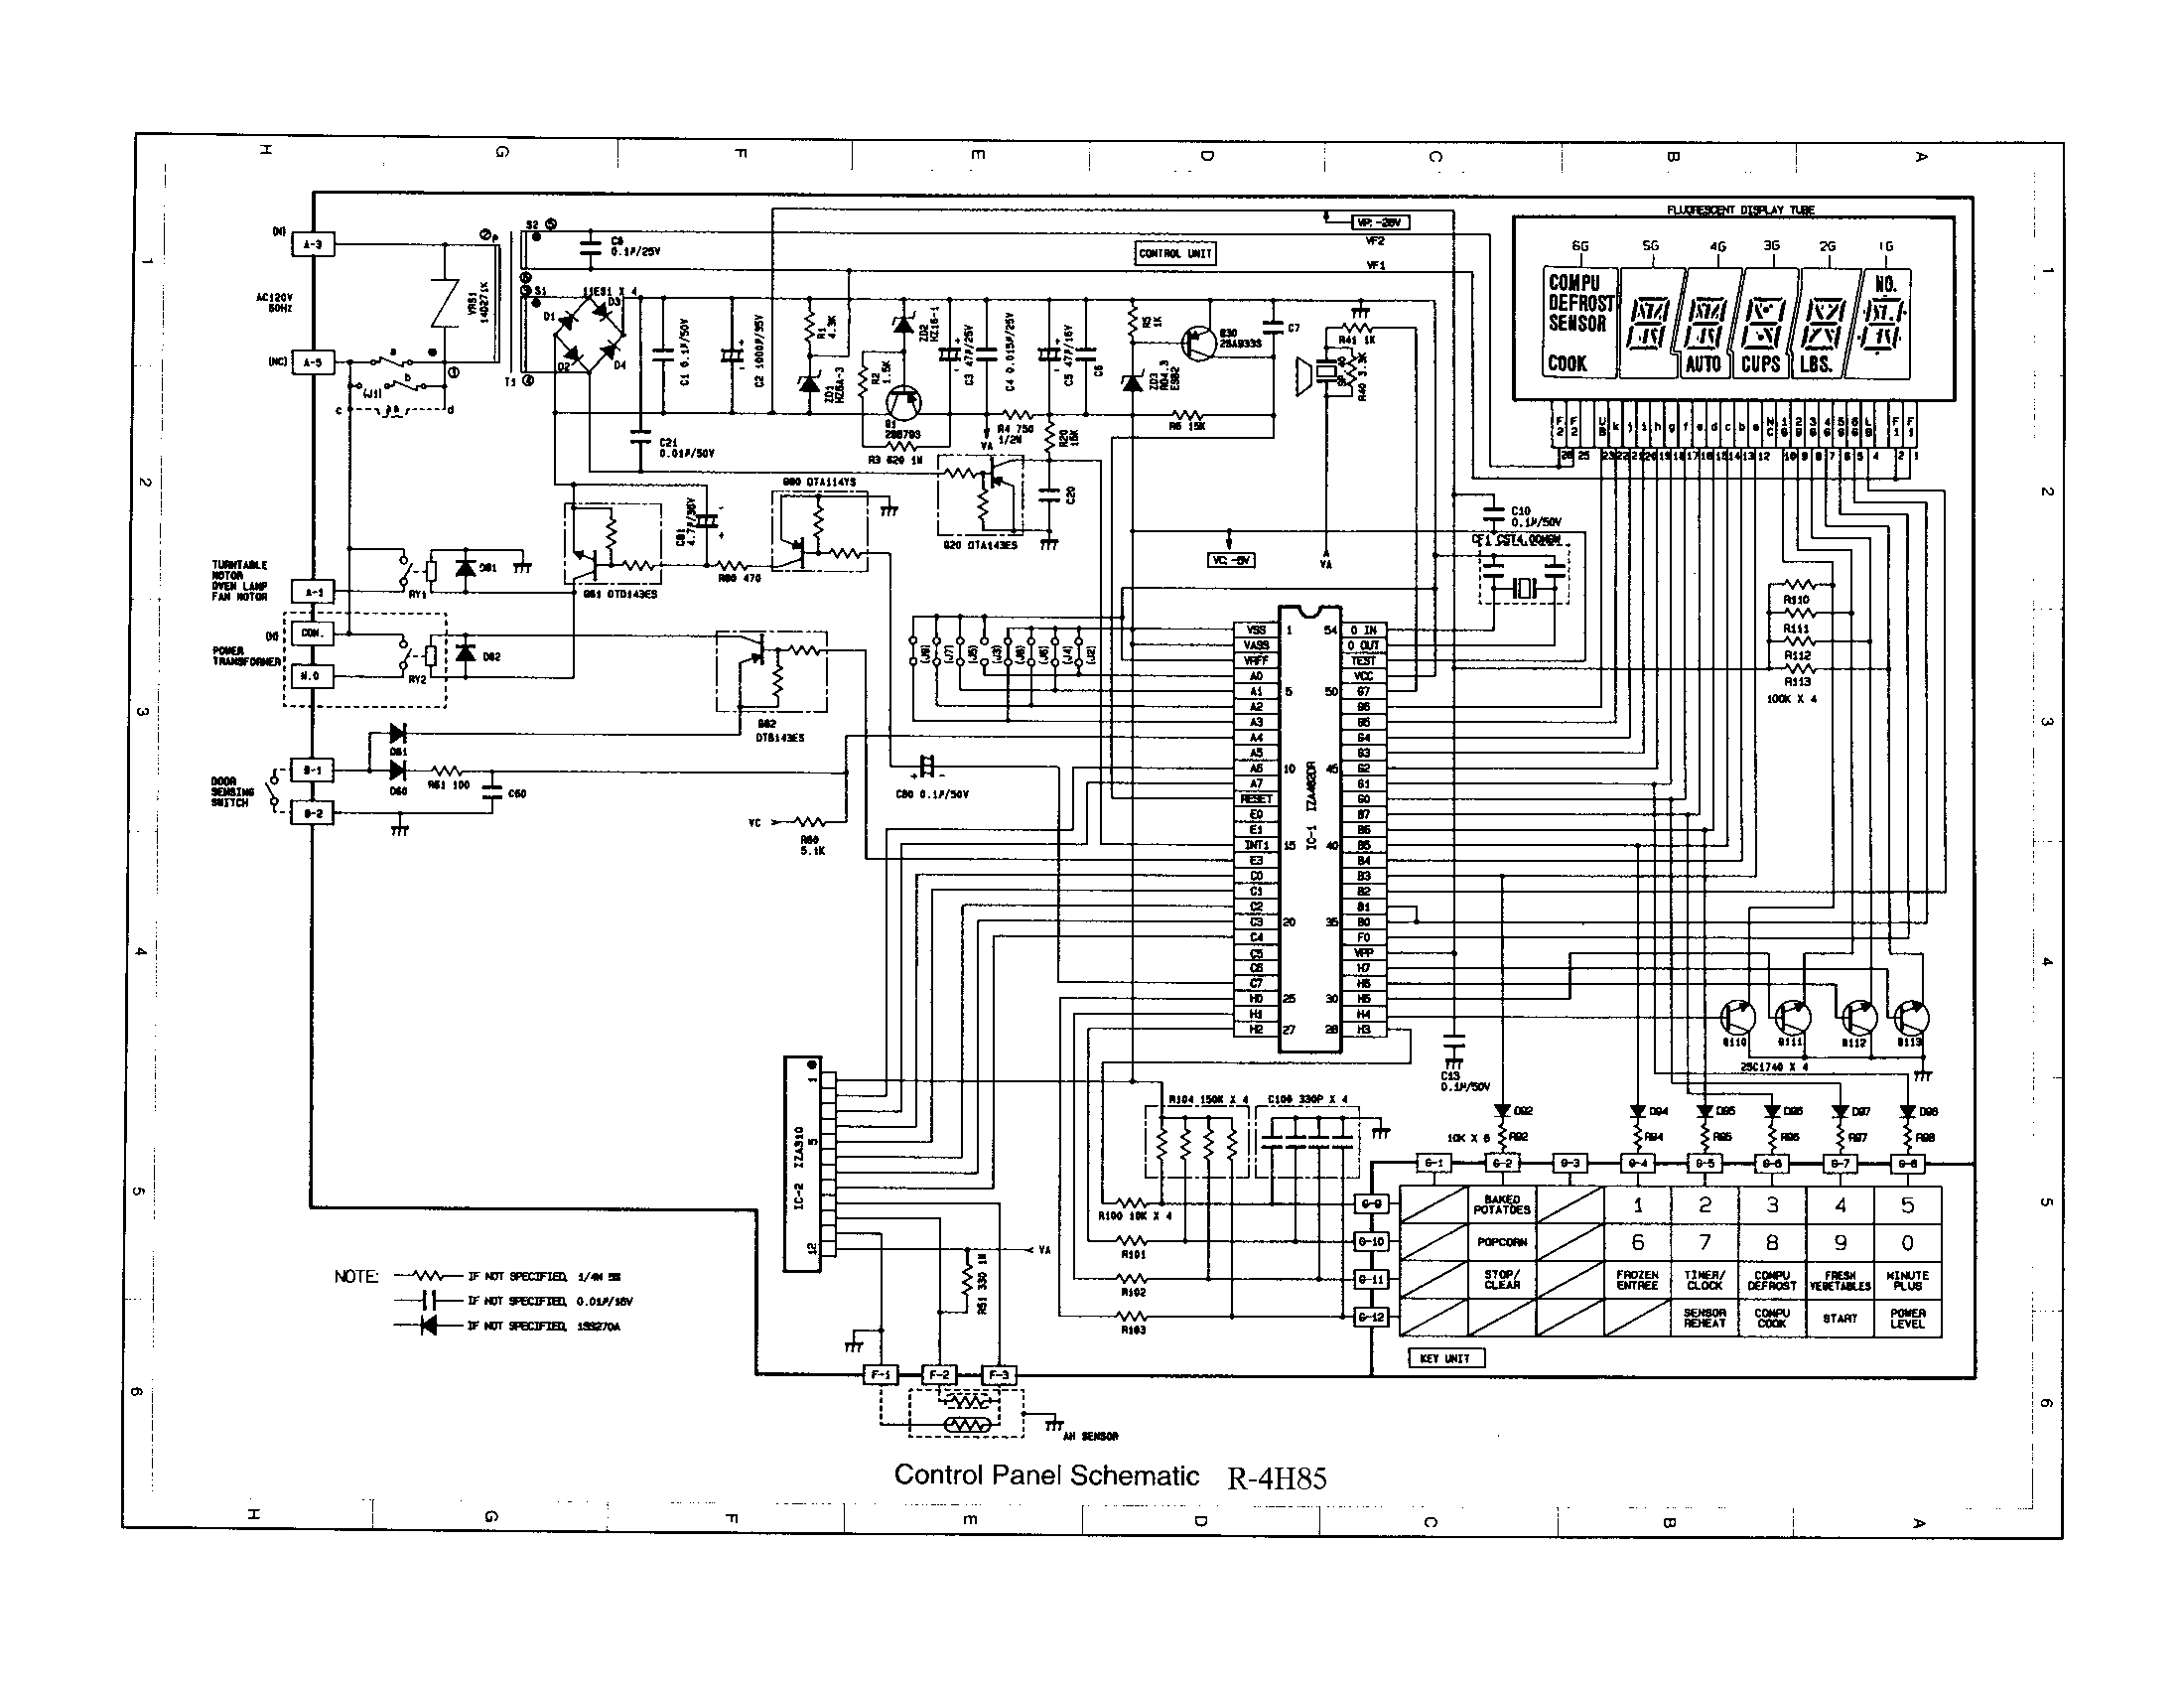 CONTROL PANEL SCHEMATIC R-4H84 Diagram & Parts List for